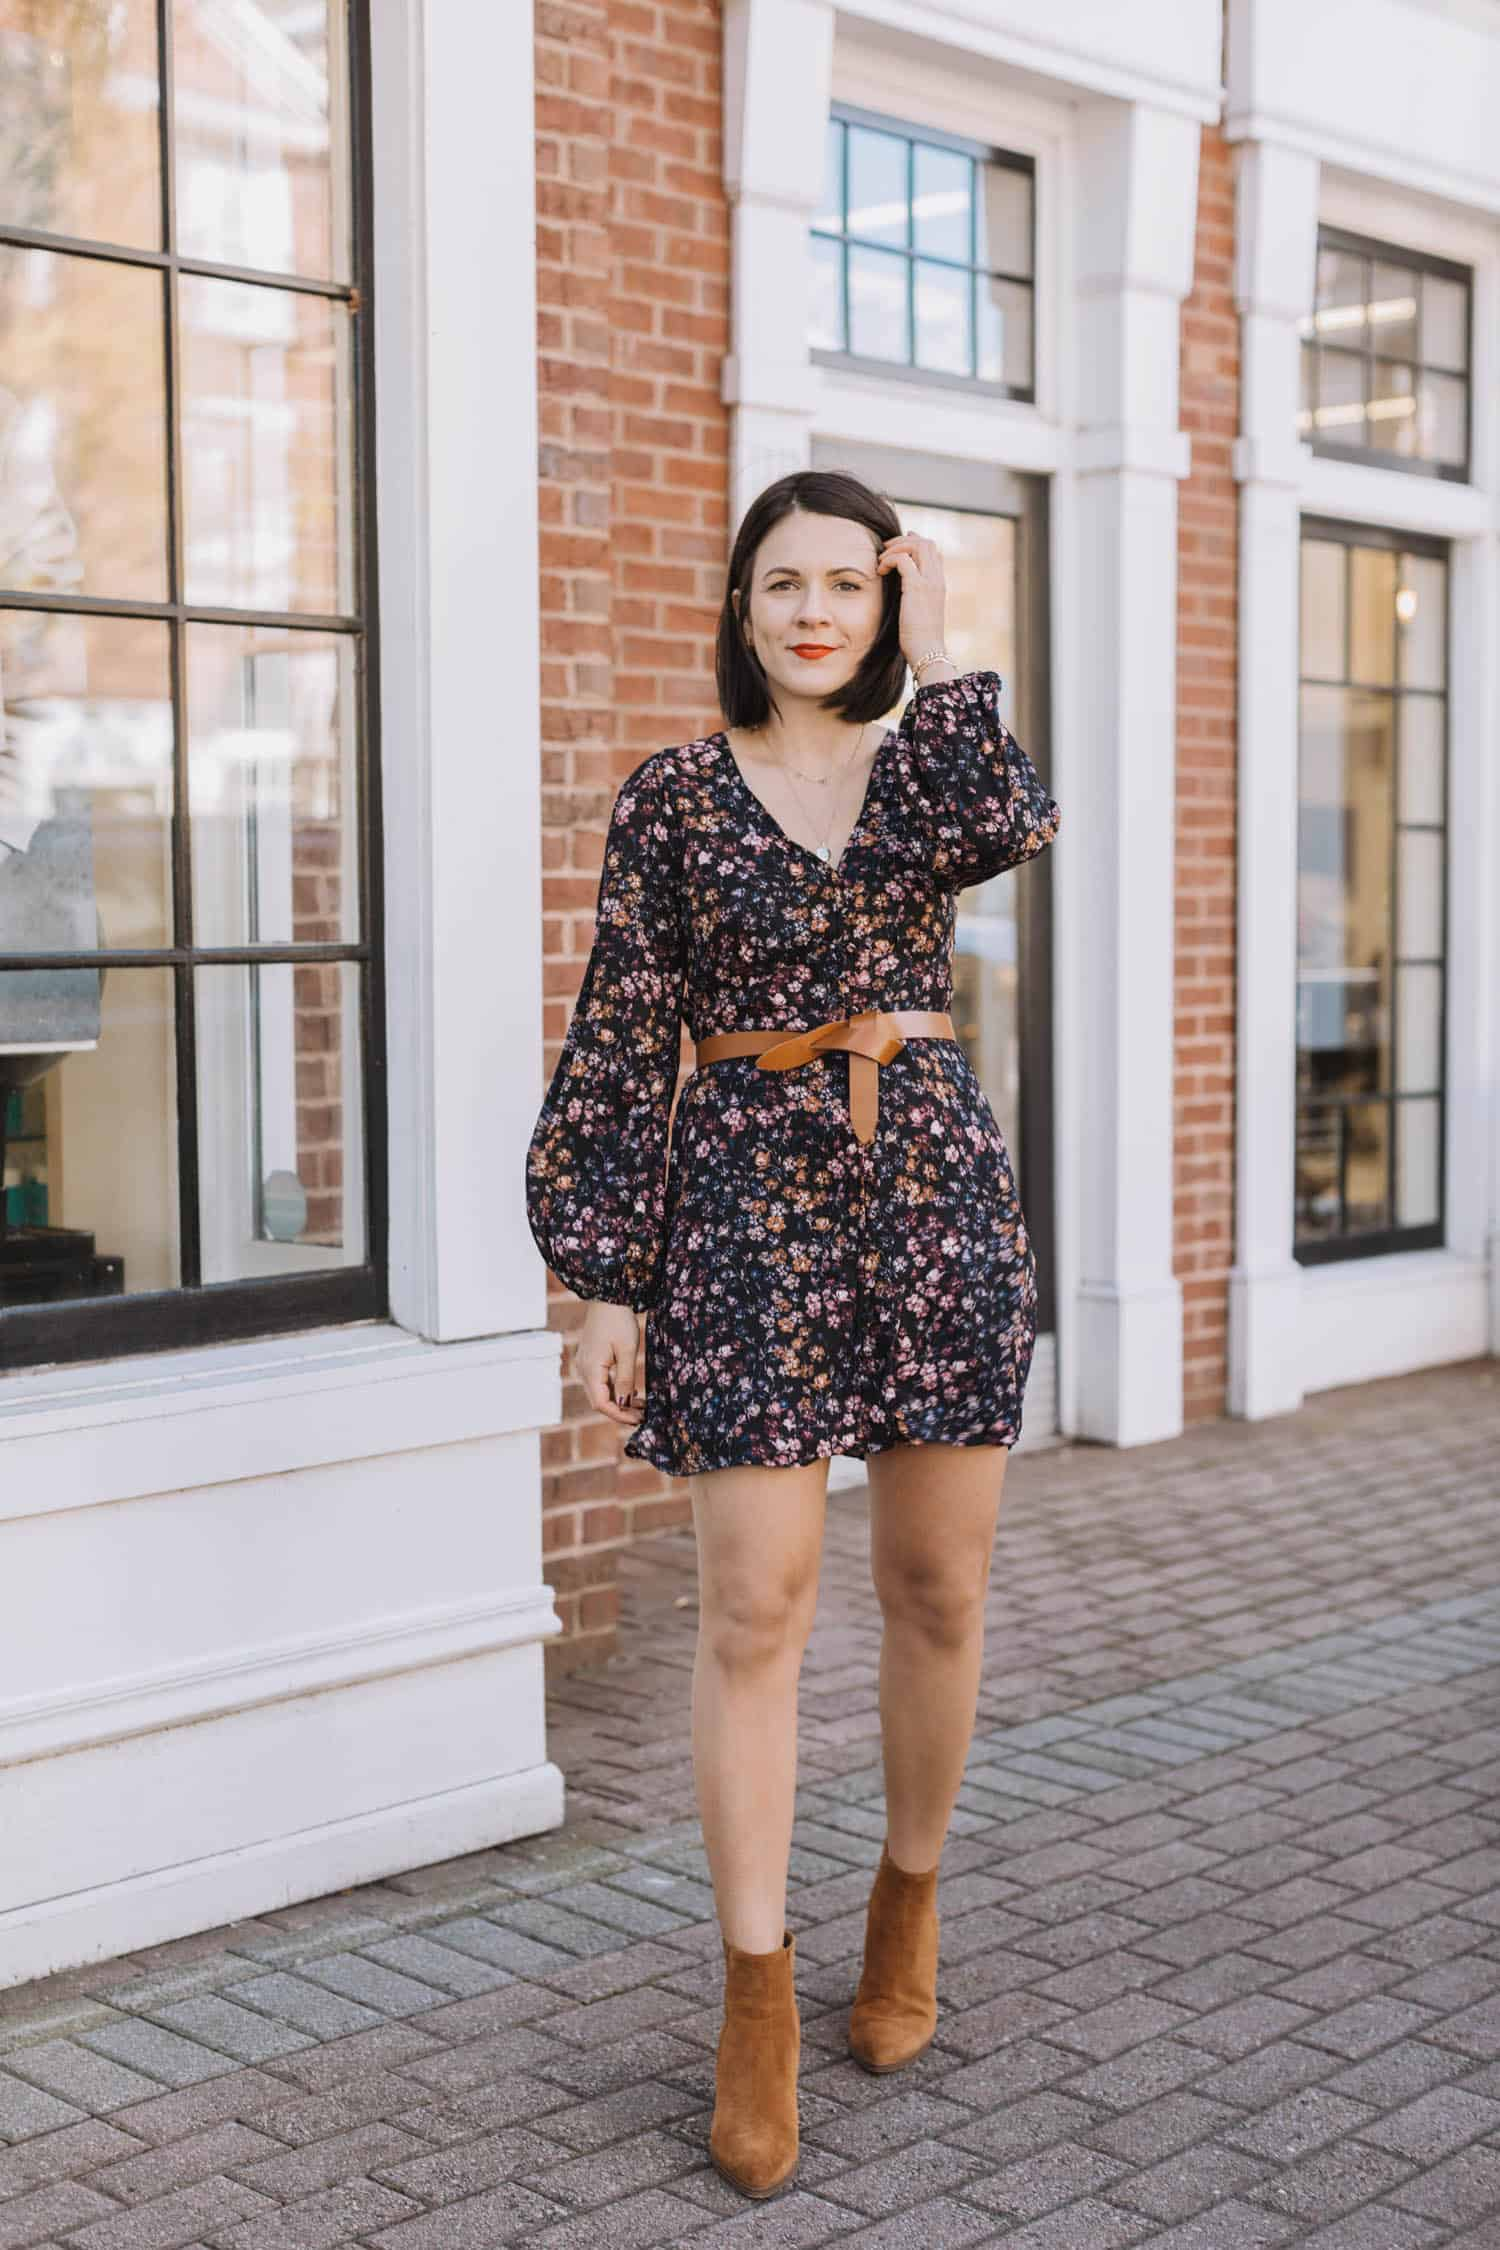 Floral Mini Dress Styled 3 Ways